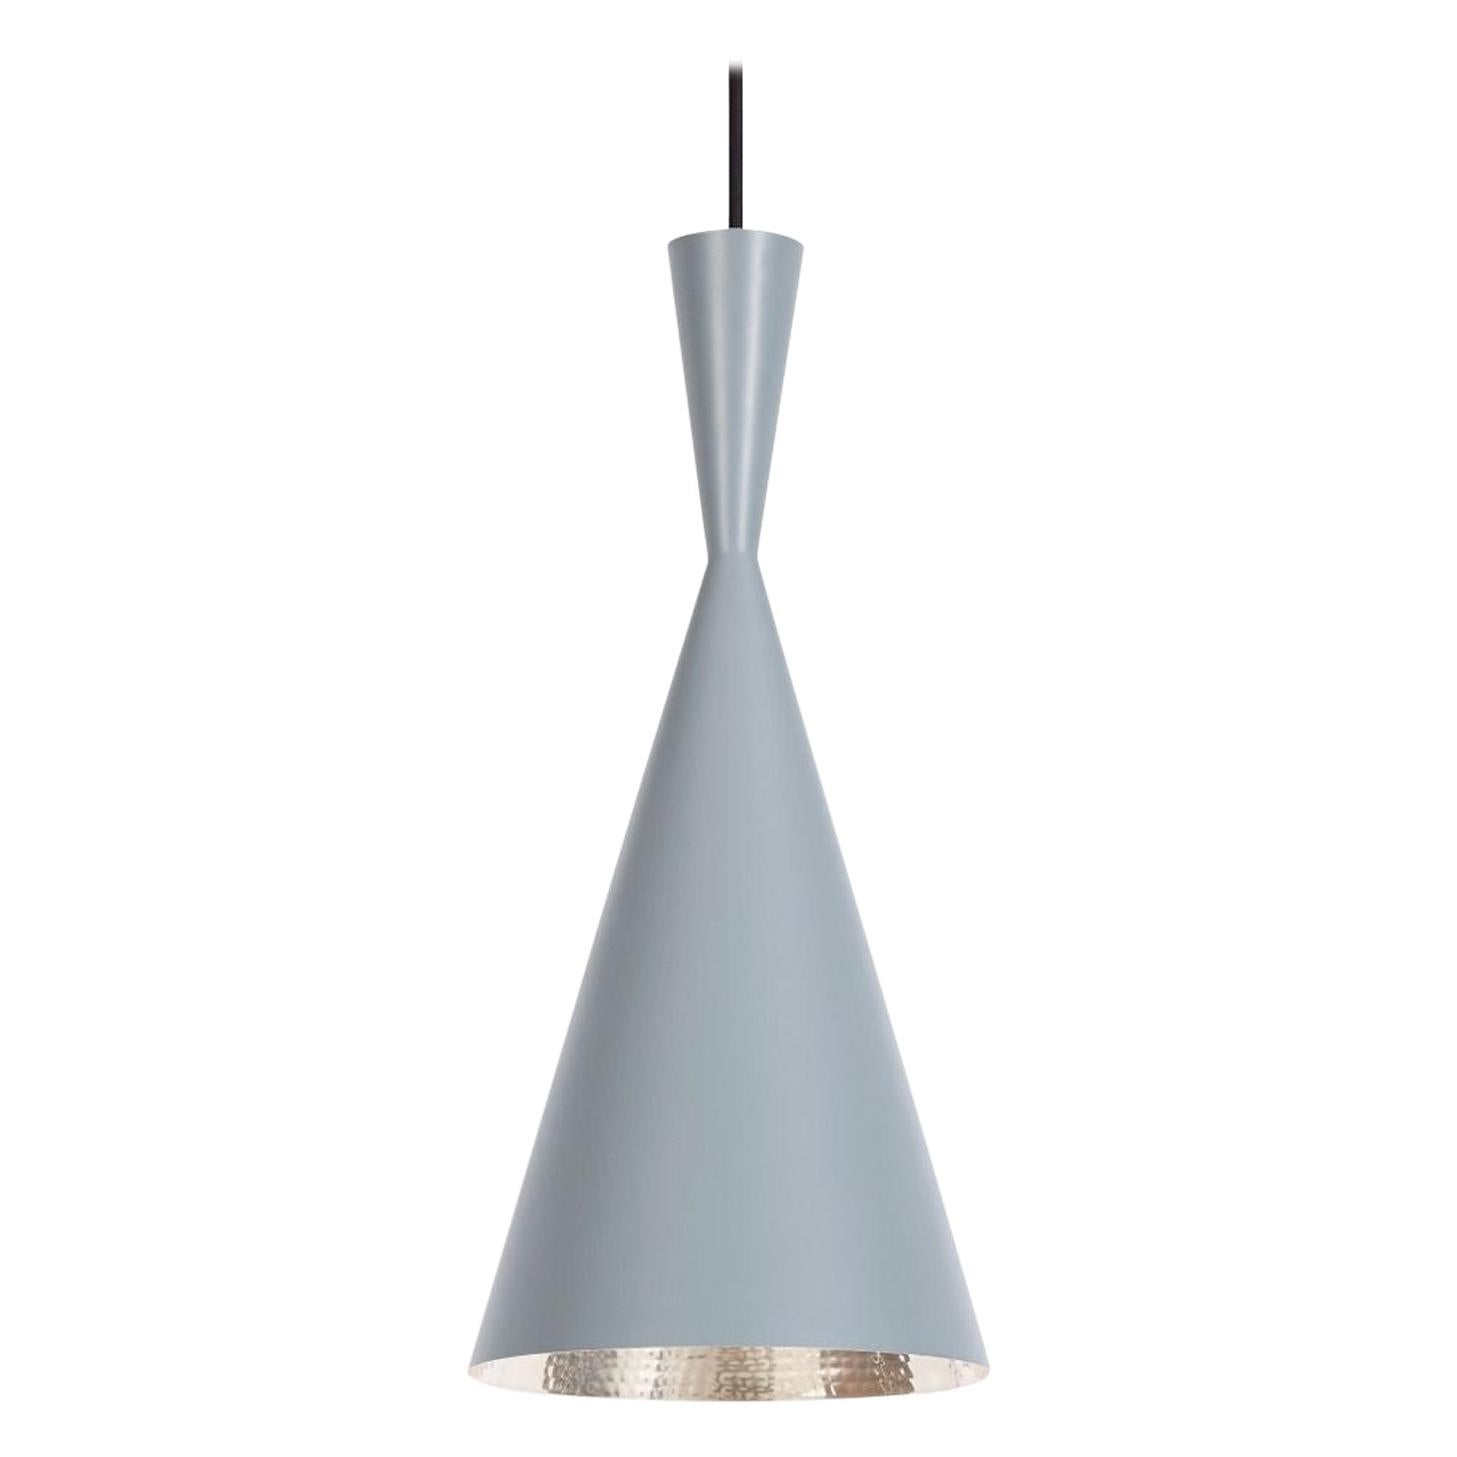 Minimal Tom Dixon Beat Tall Gray Pendant Brass Light Fixture, Contemporary